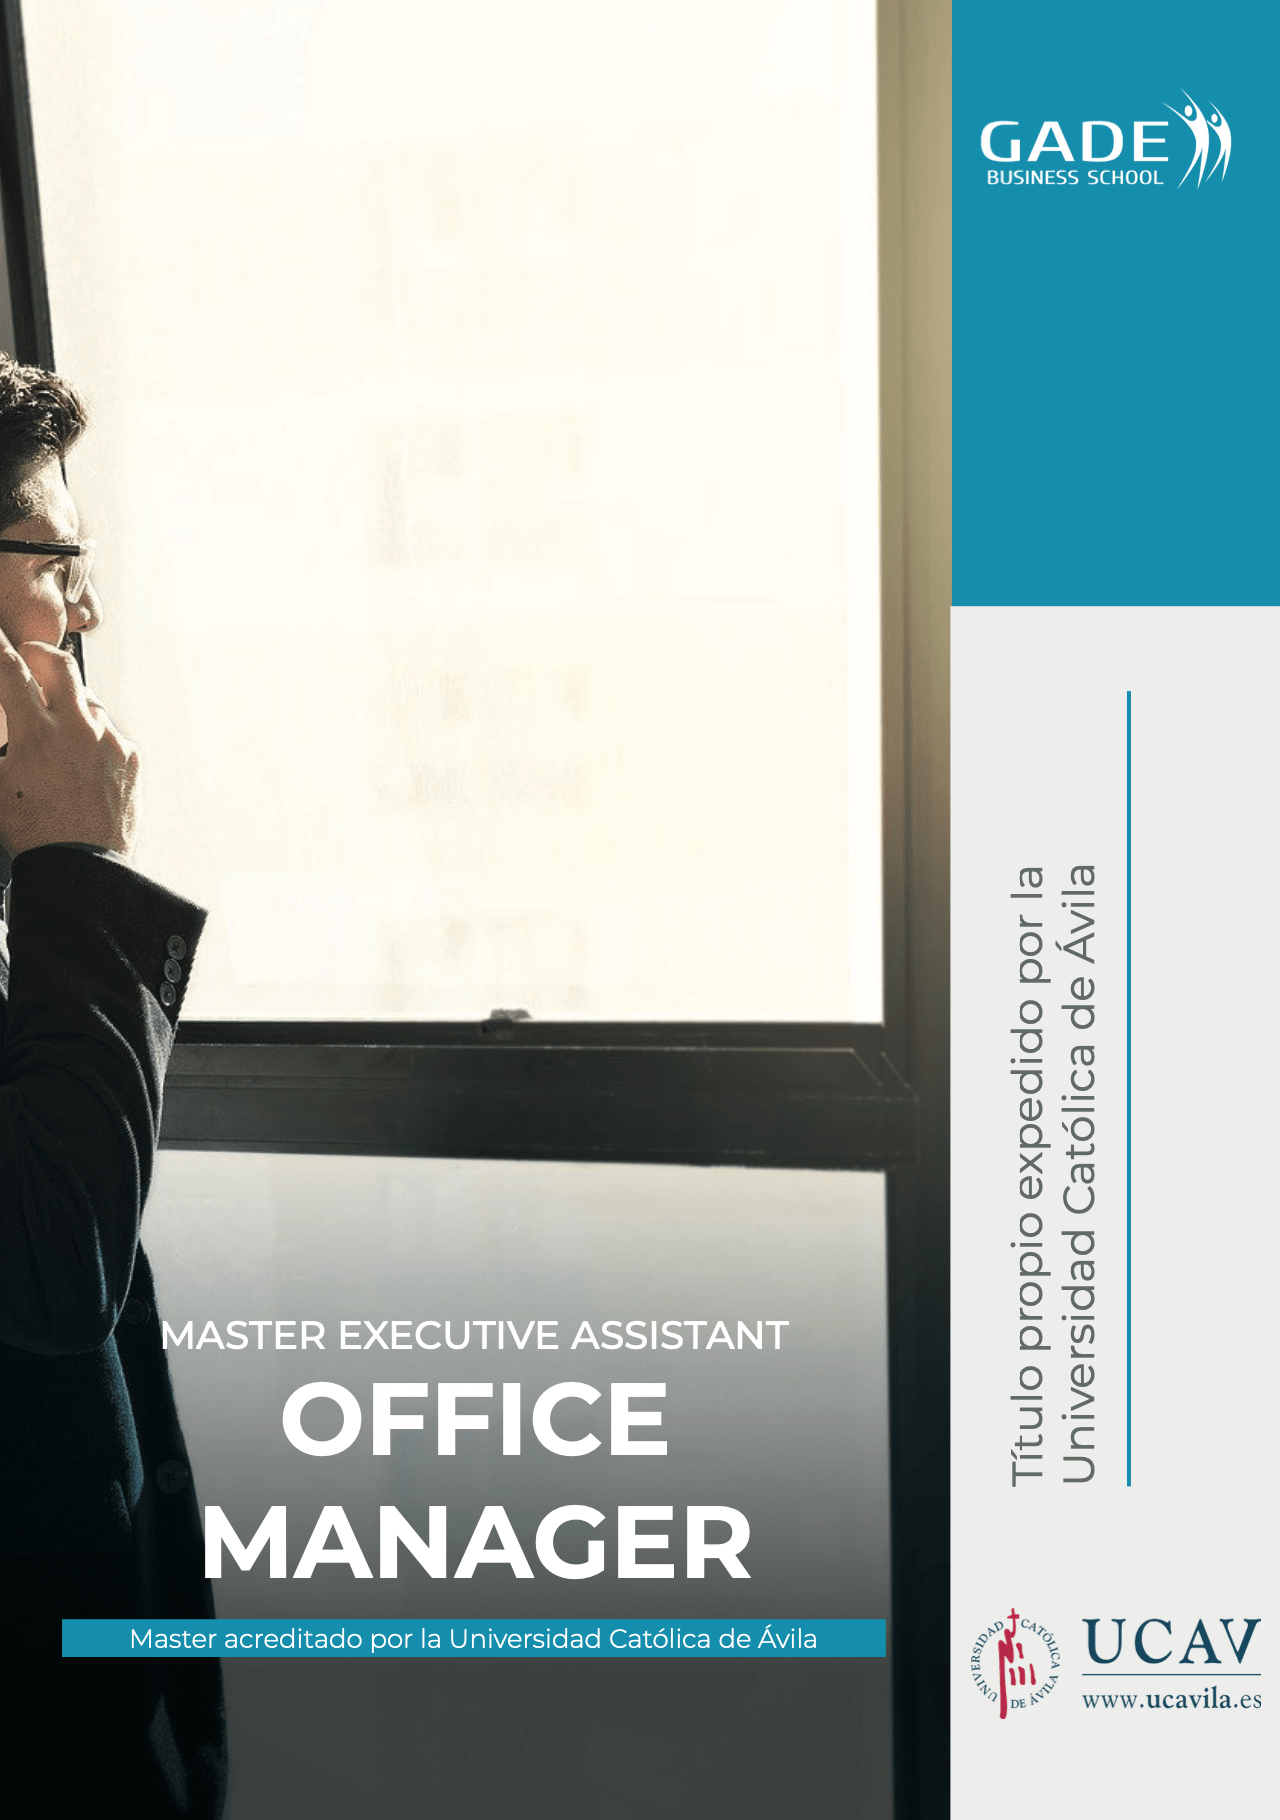 Programa completo - Máster EXECUTIVE ASSISTANT OFFICE MANAGER acreditado por la UCAV